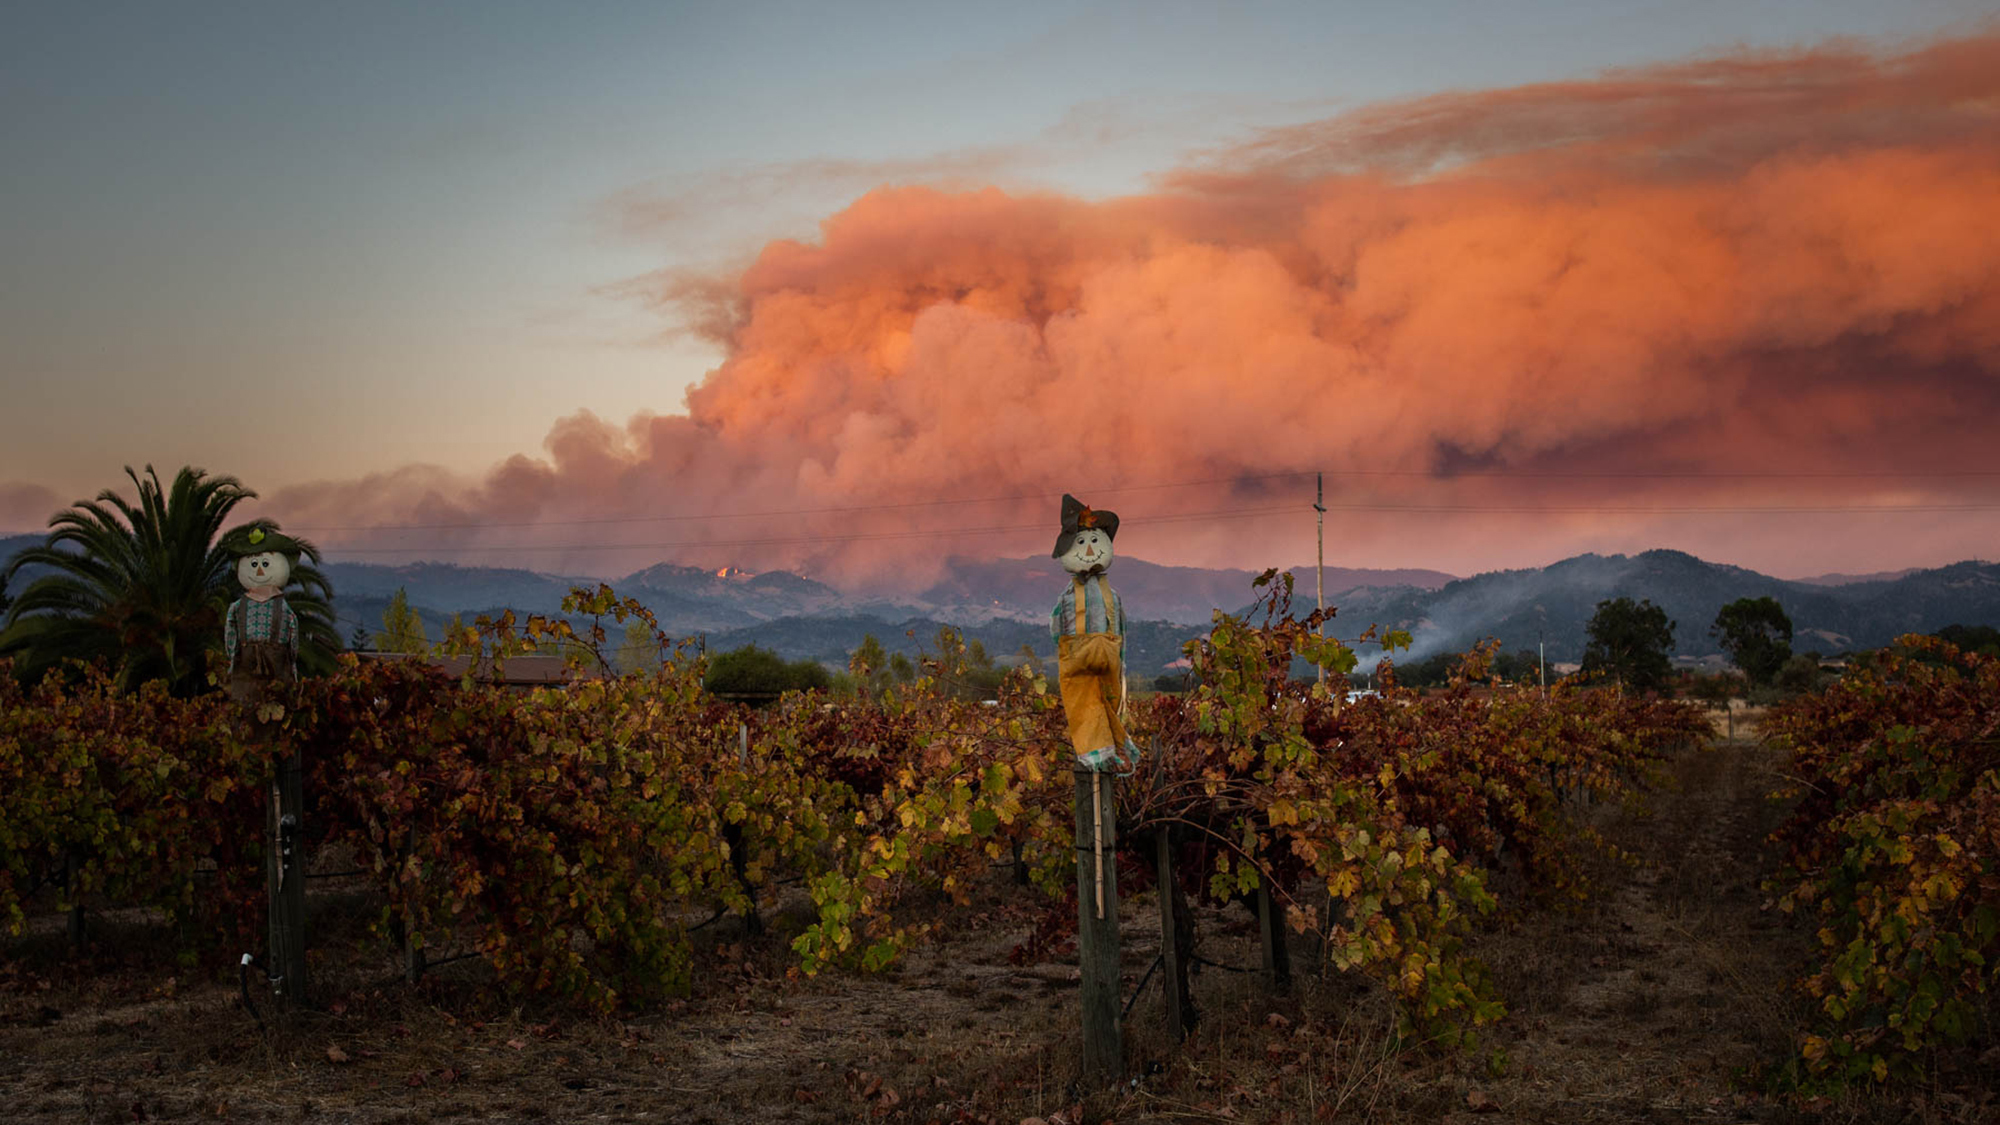 Outside of risks from the fire's heat — and any health risks related to a long-term power outage — the main health concern in wildfire conditions is smoke, which produces particulate matter that can penetrate deep into the lungs, increasing the risk of respiratory diseases and asthma, as well as heart problems.